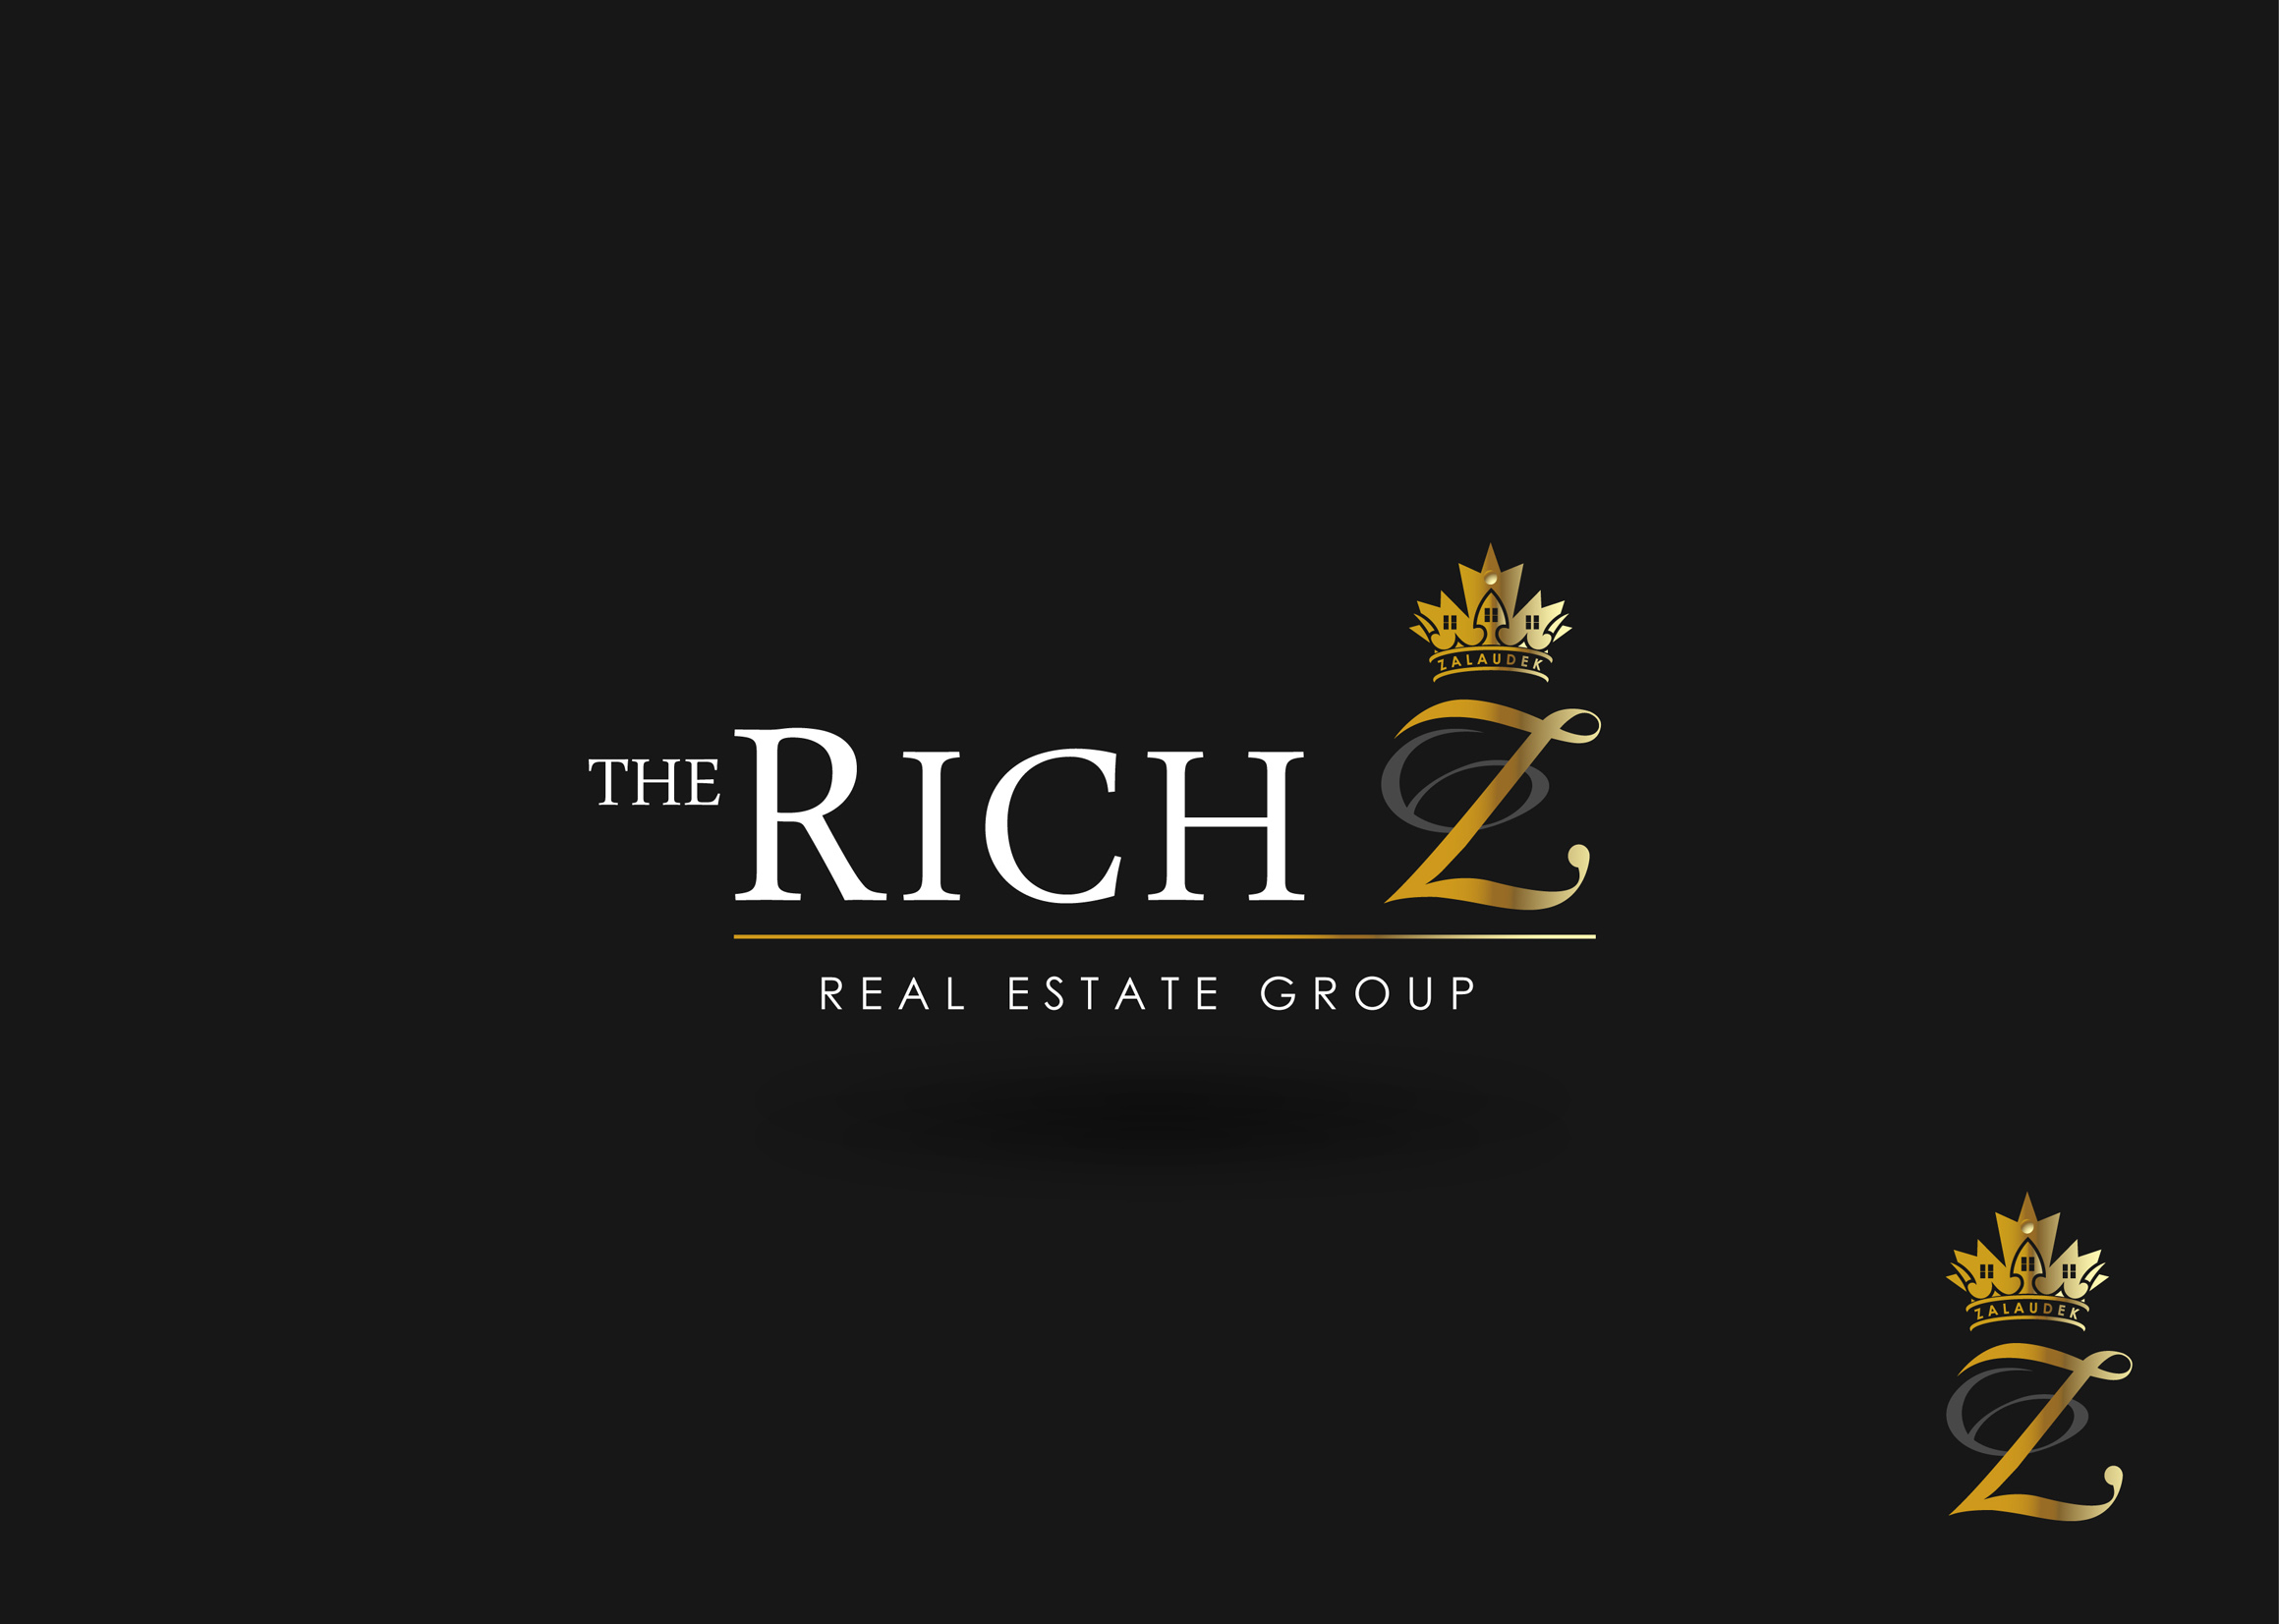 Logo Design by Mark Anthony Moreto Jordan - Entry No. 258 in the Logo Design Contest The Rich Z. Real Estate Group Logo Design.